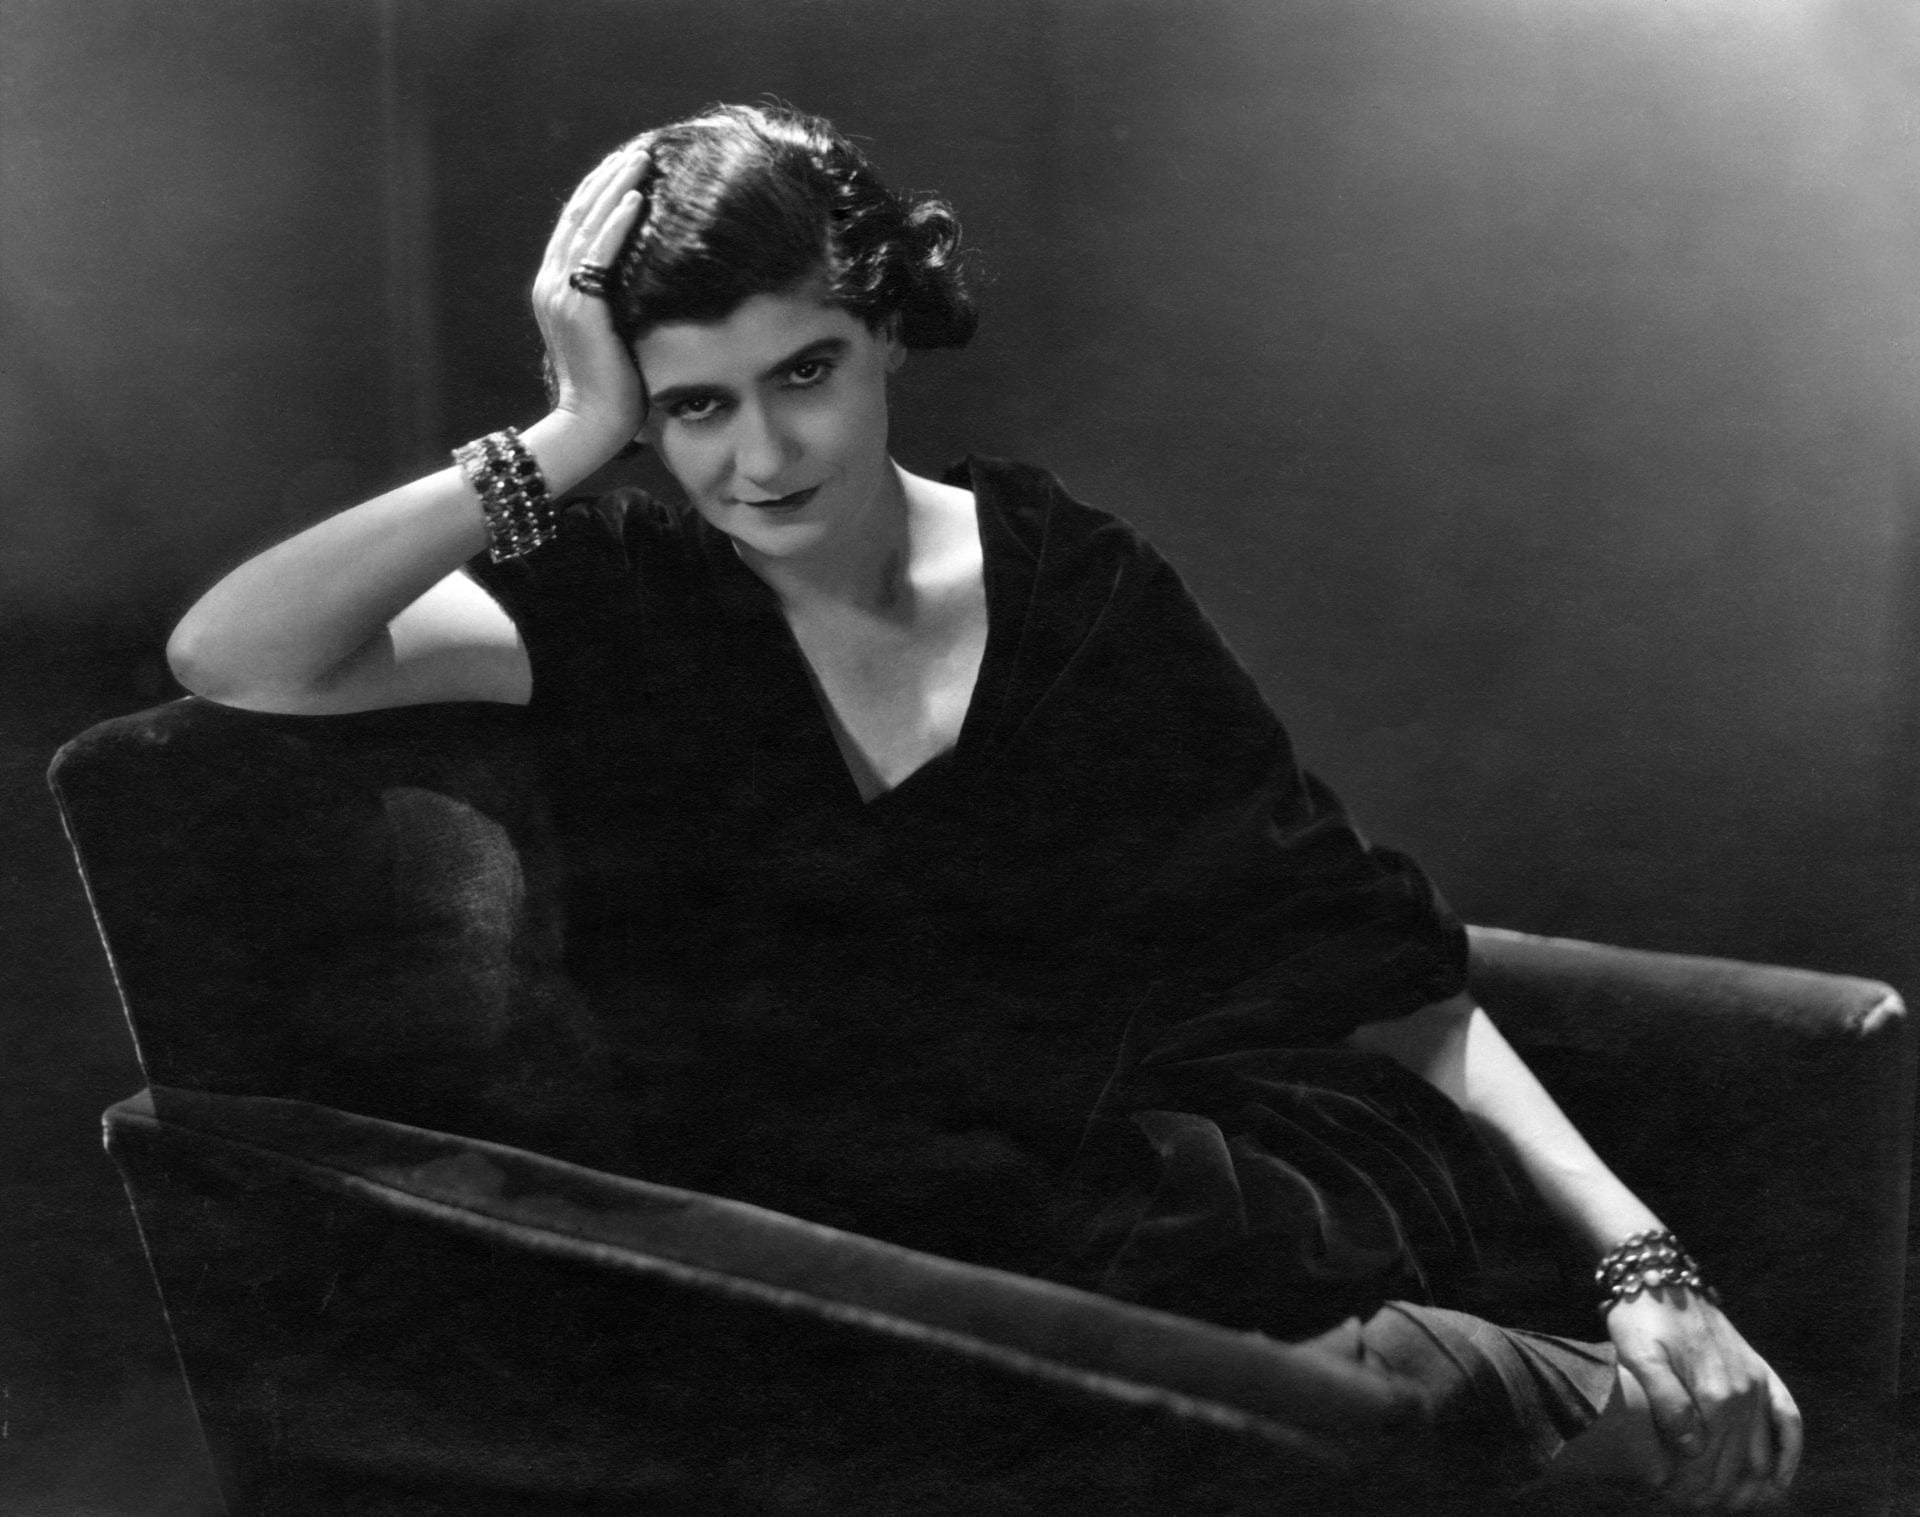 Gabrielle Chanel lounging on a couch